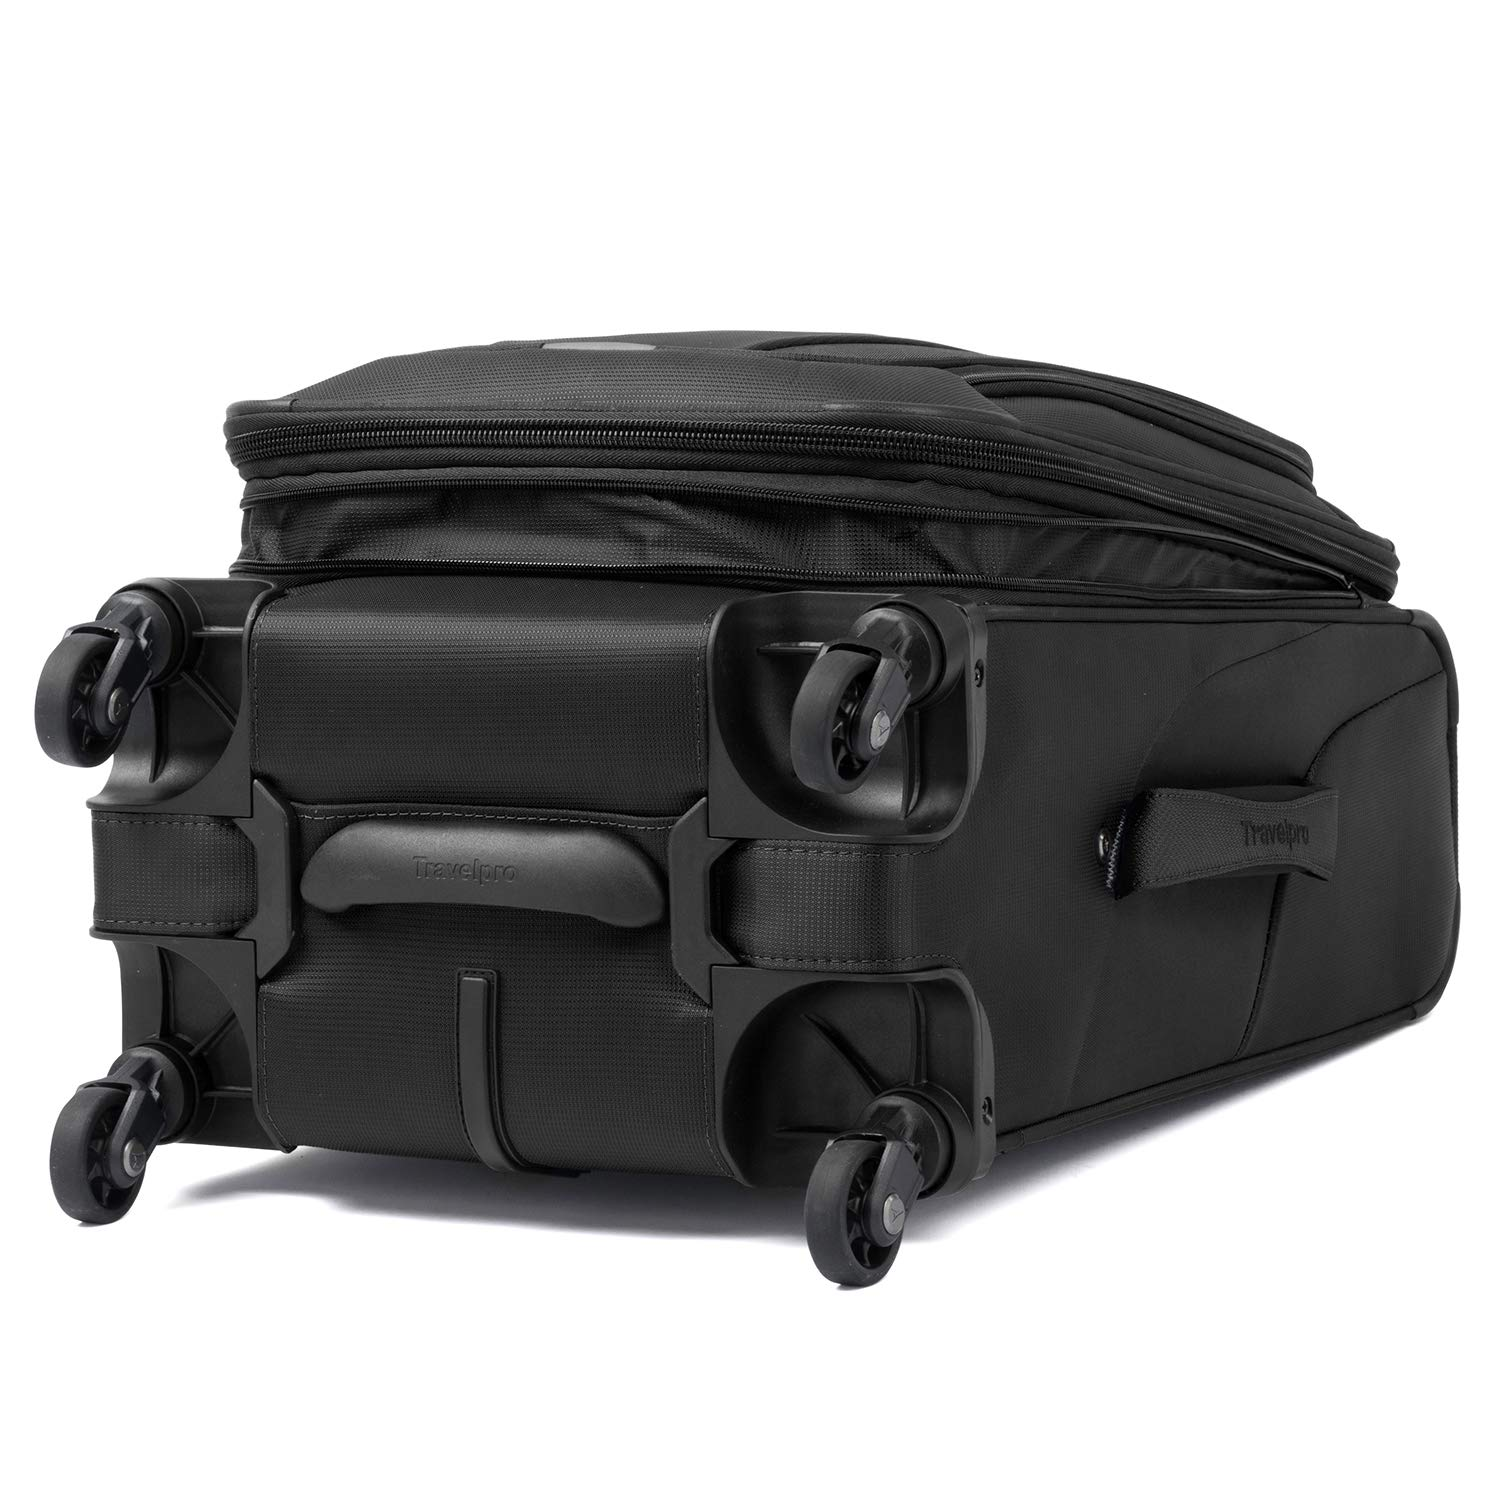 Travelpro Maxlite 4 Expandable 21 Inch Spinner Suitcase, Black by Travelpro (Image #4)